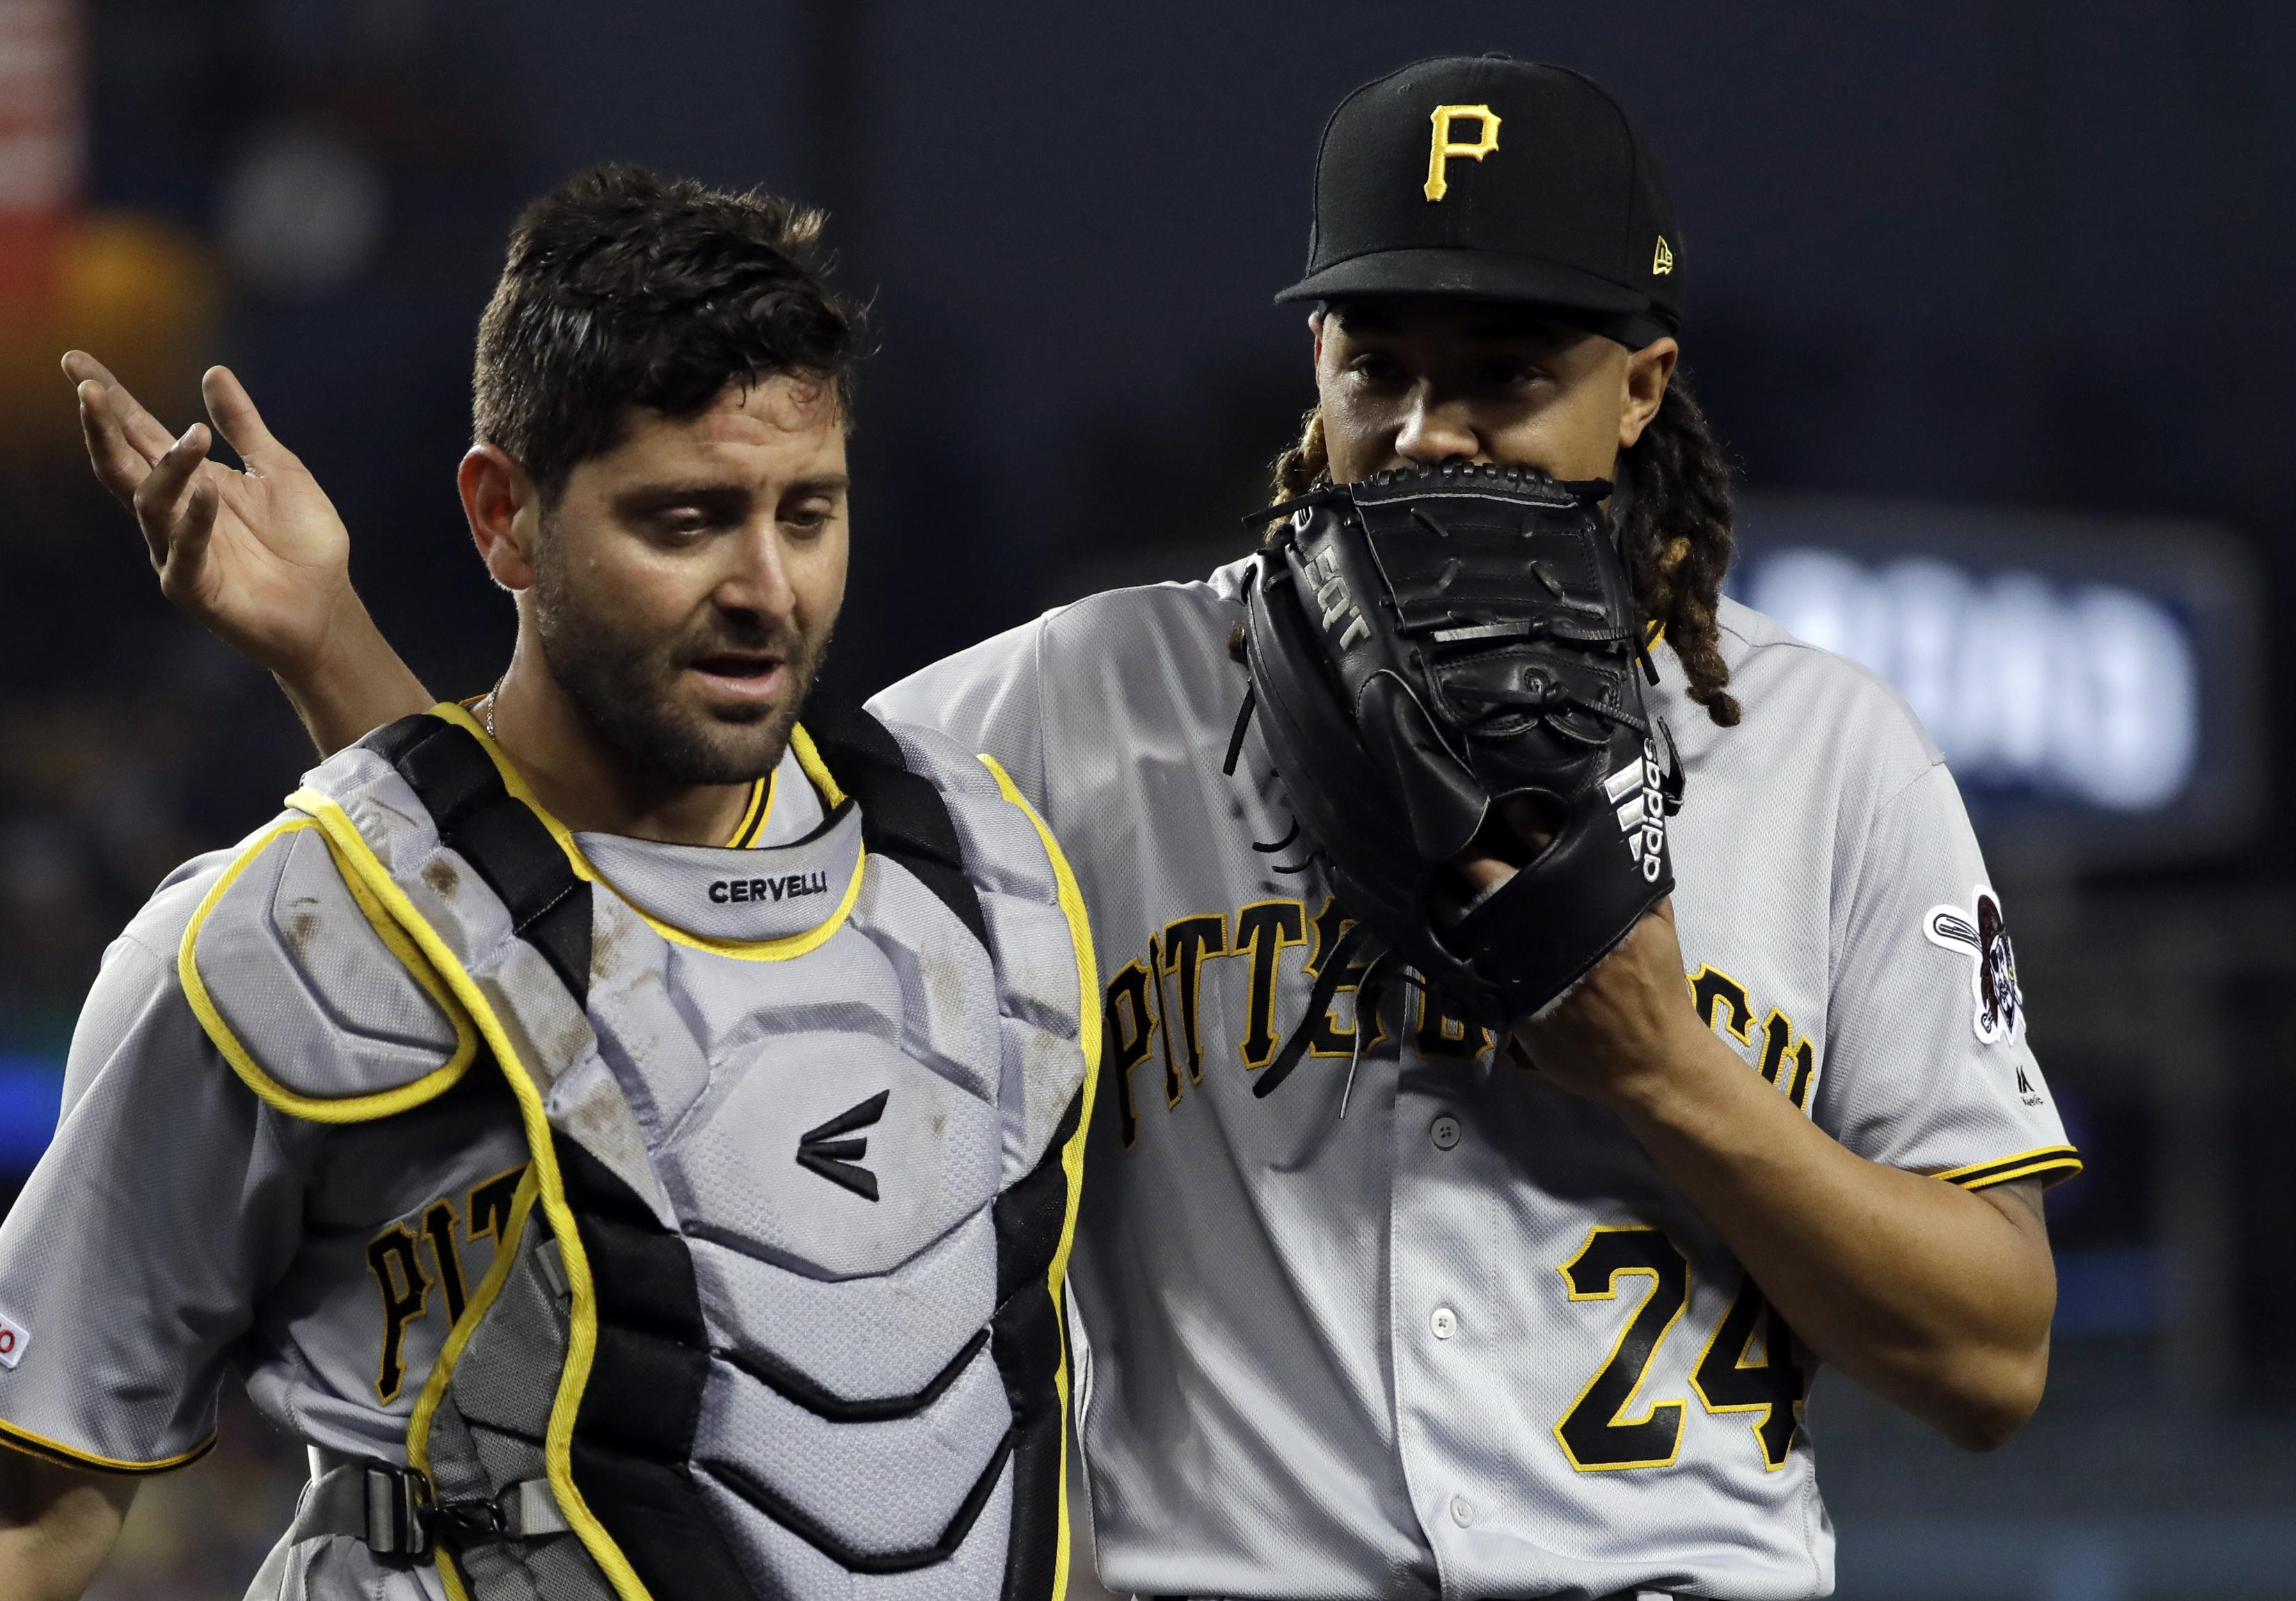 wholesale dealer 6a73e 91d54 Pirates pitcher Chris Archer sidelined by injured thumb ...